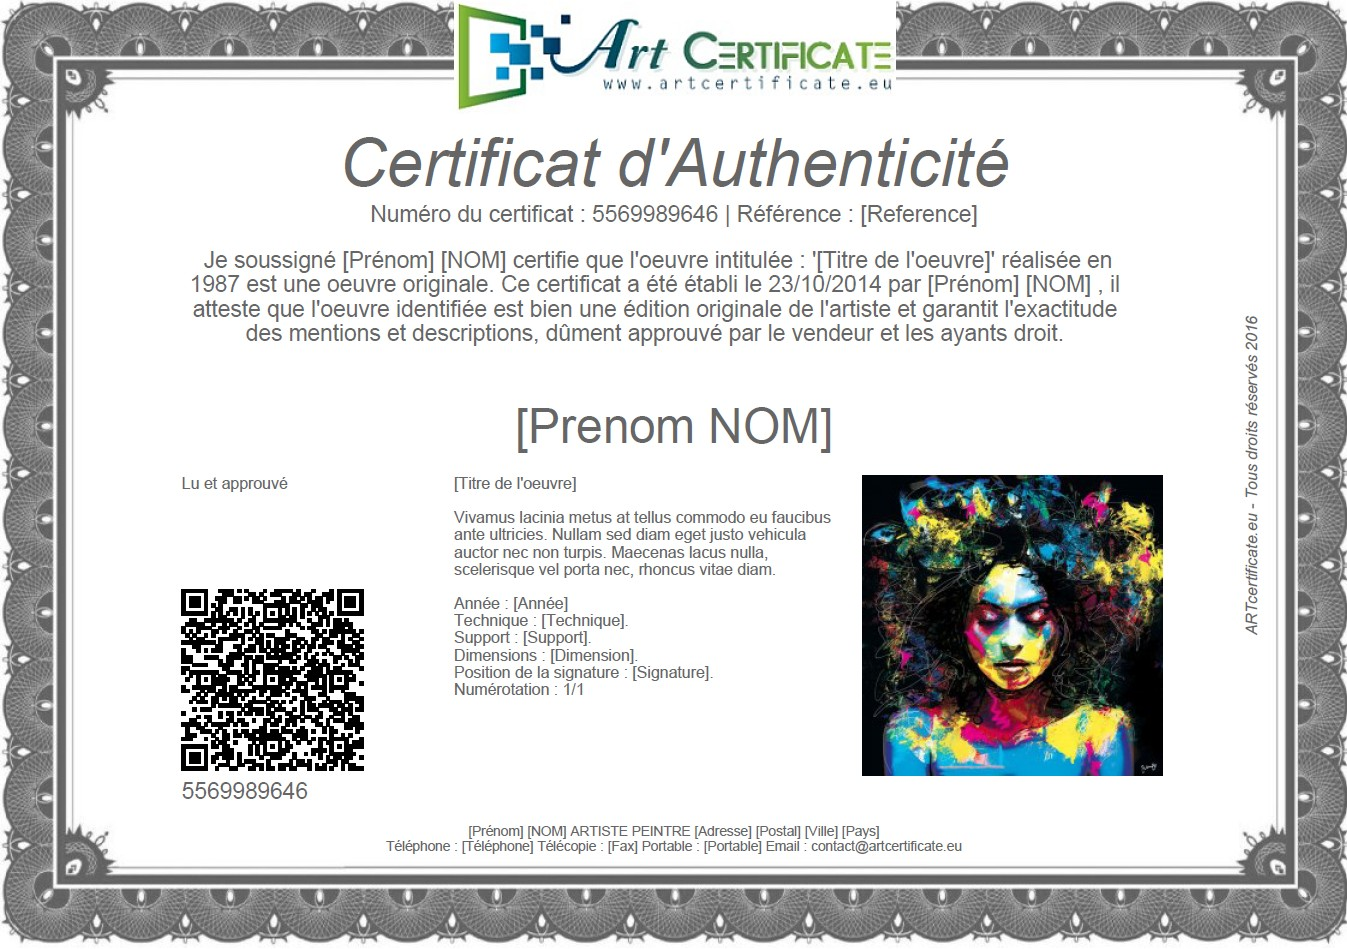 Example of a Certificate of Authenticity